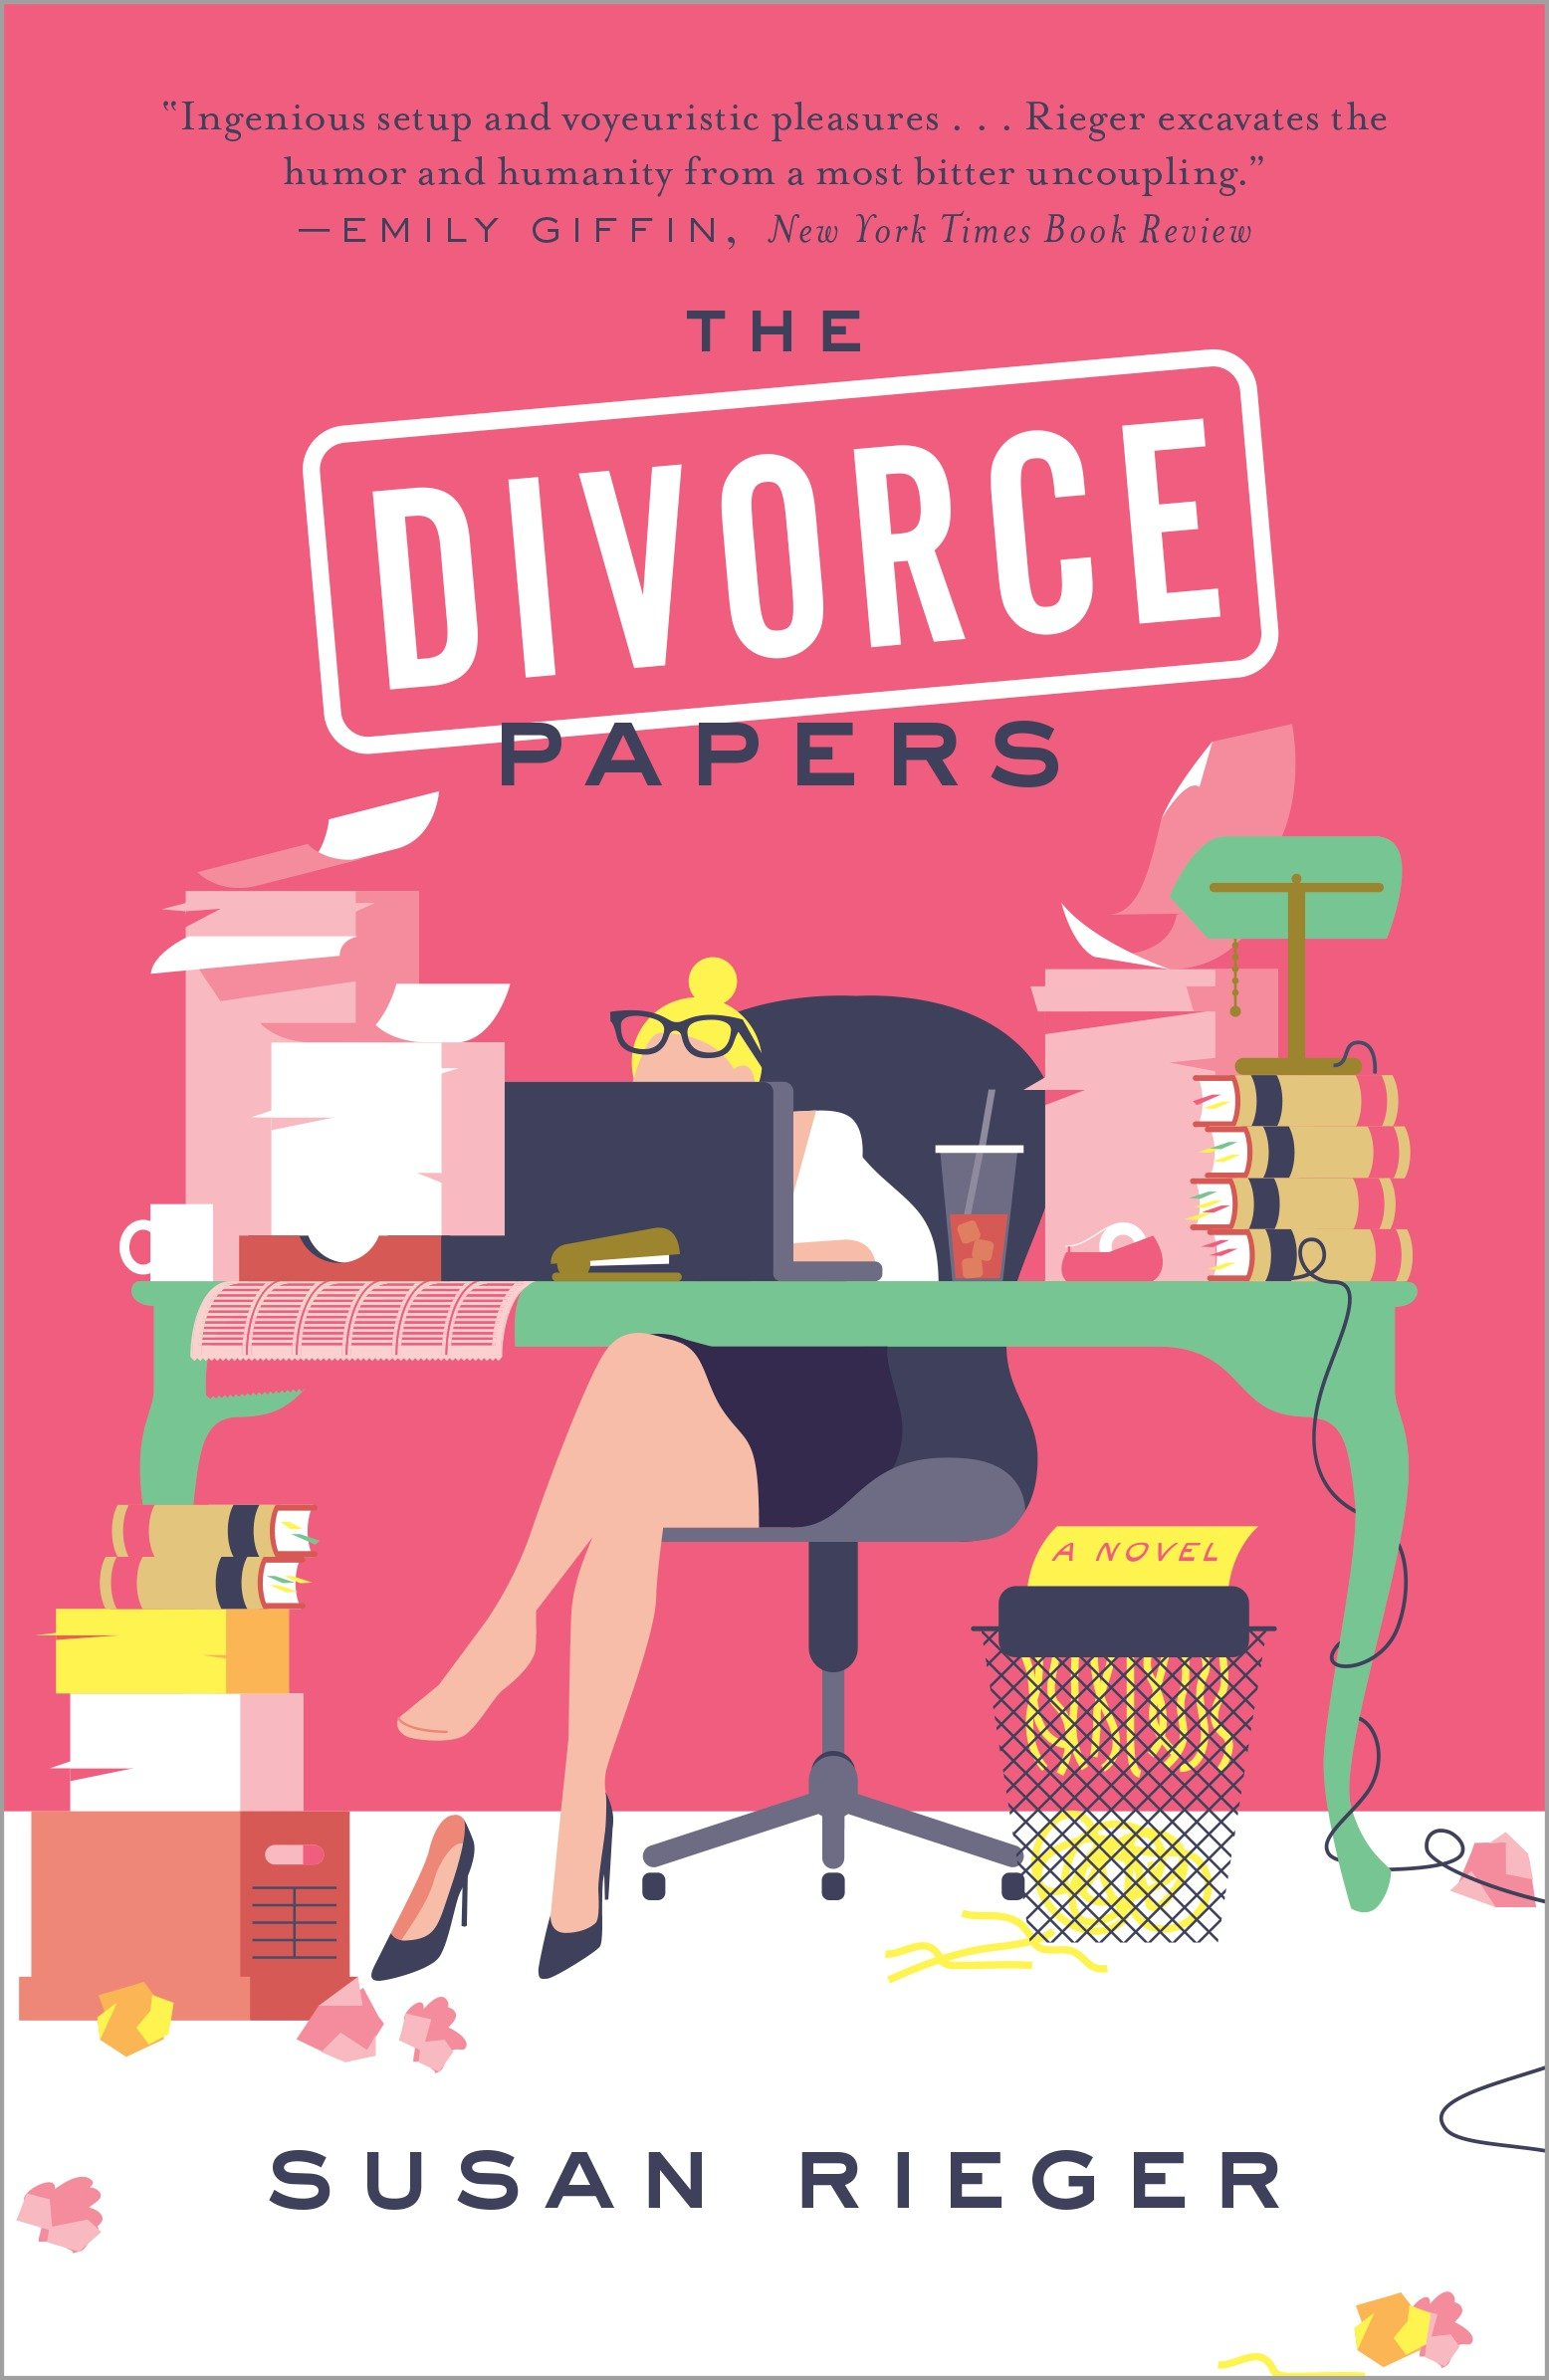 The divorce papers cover image